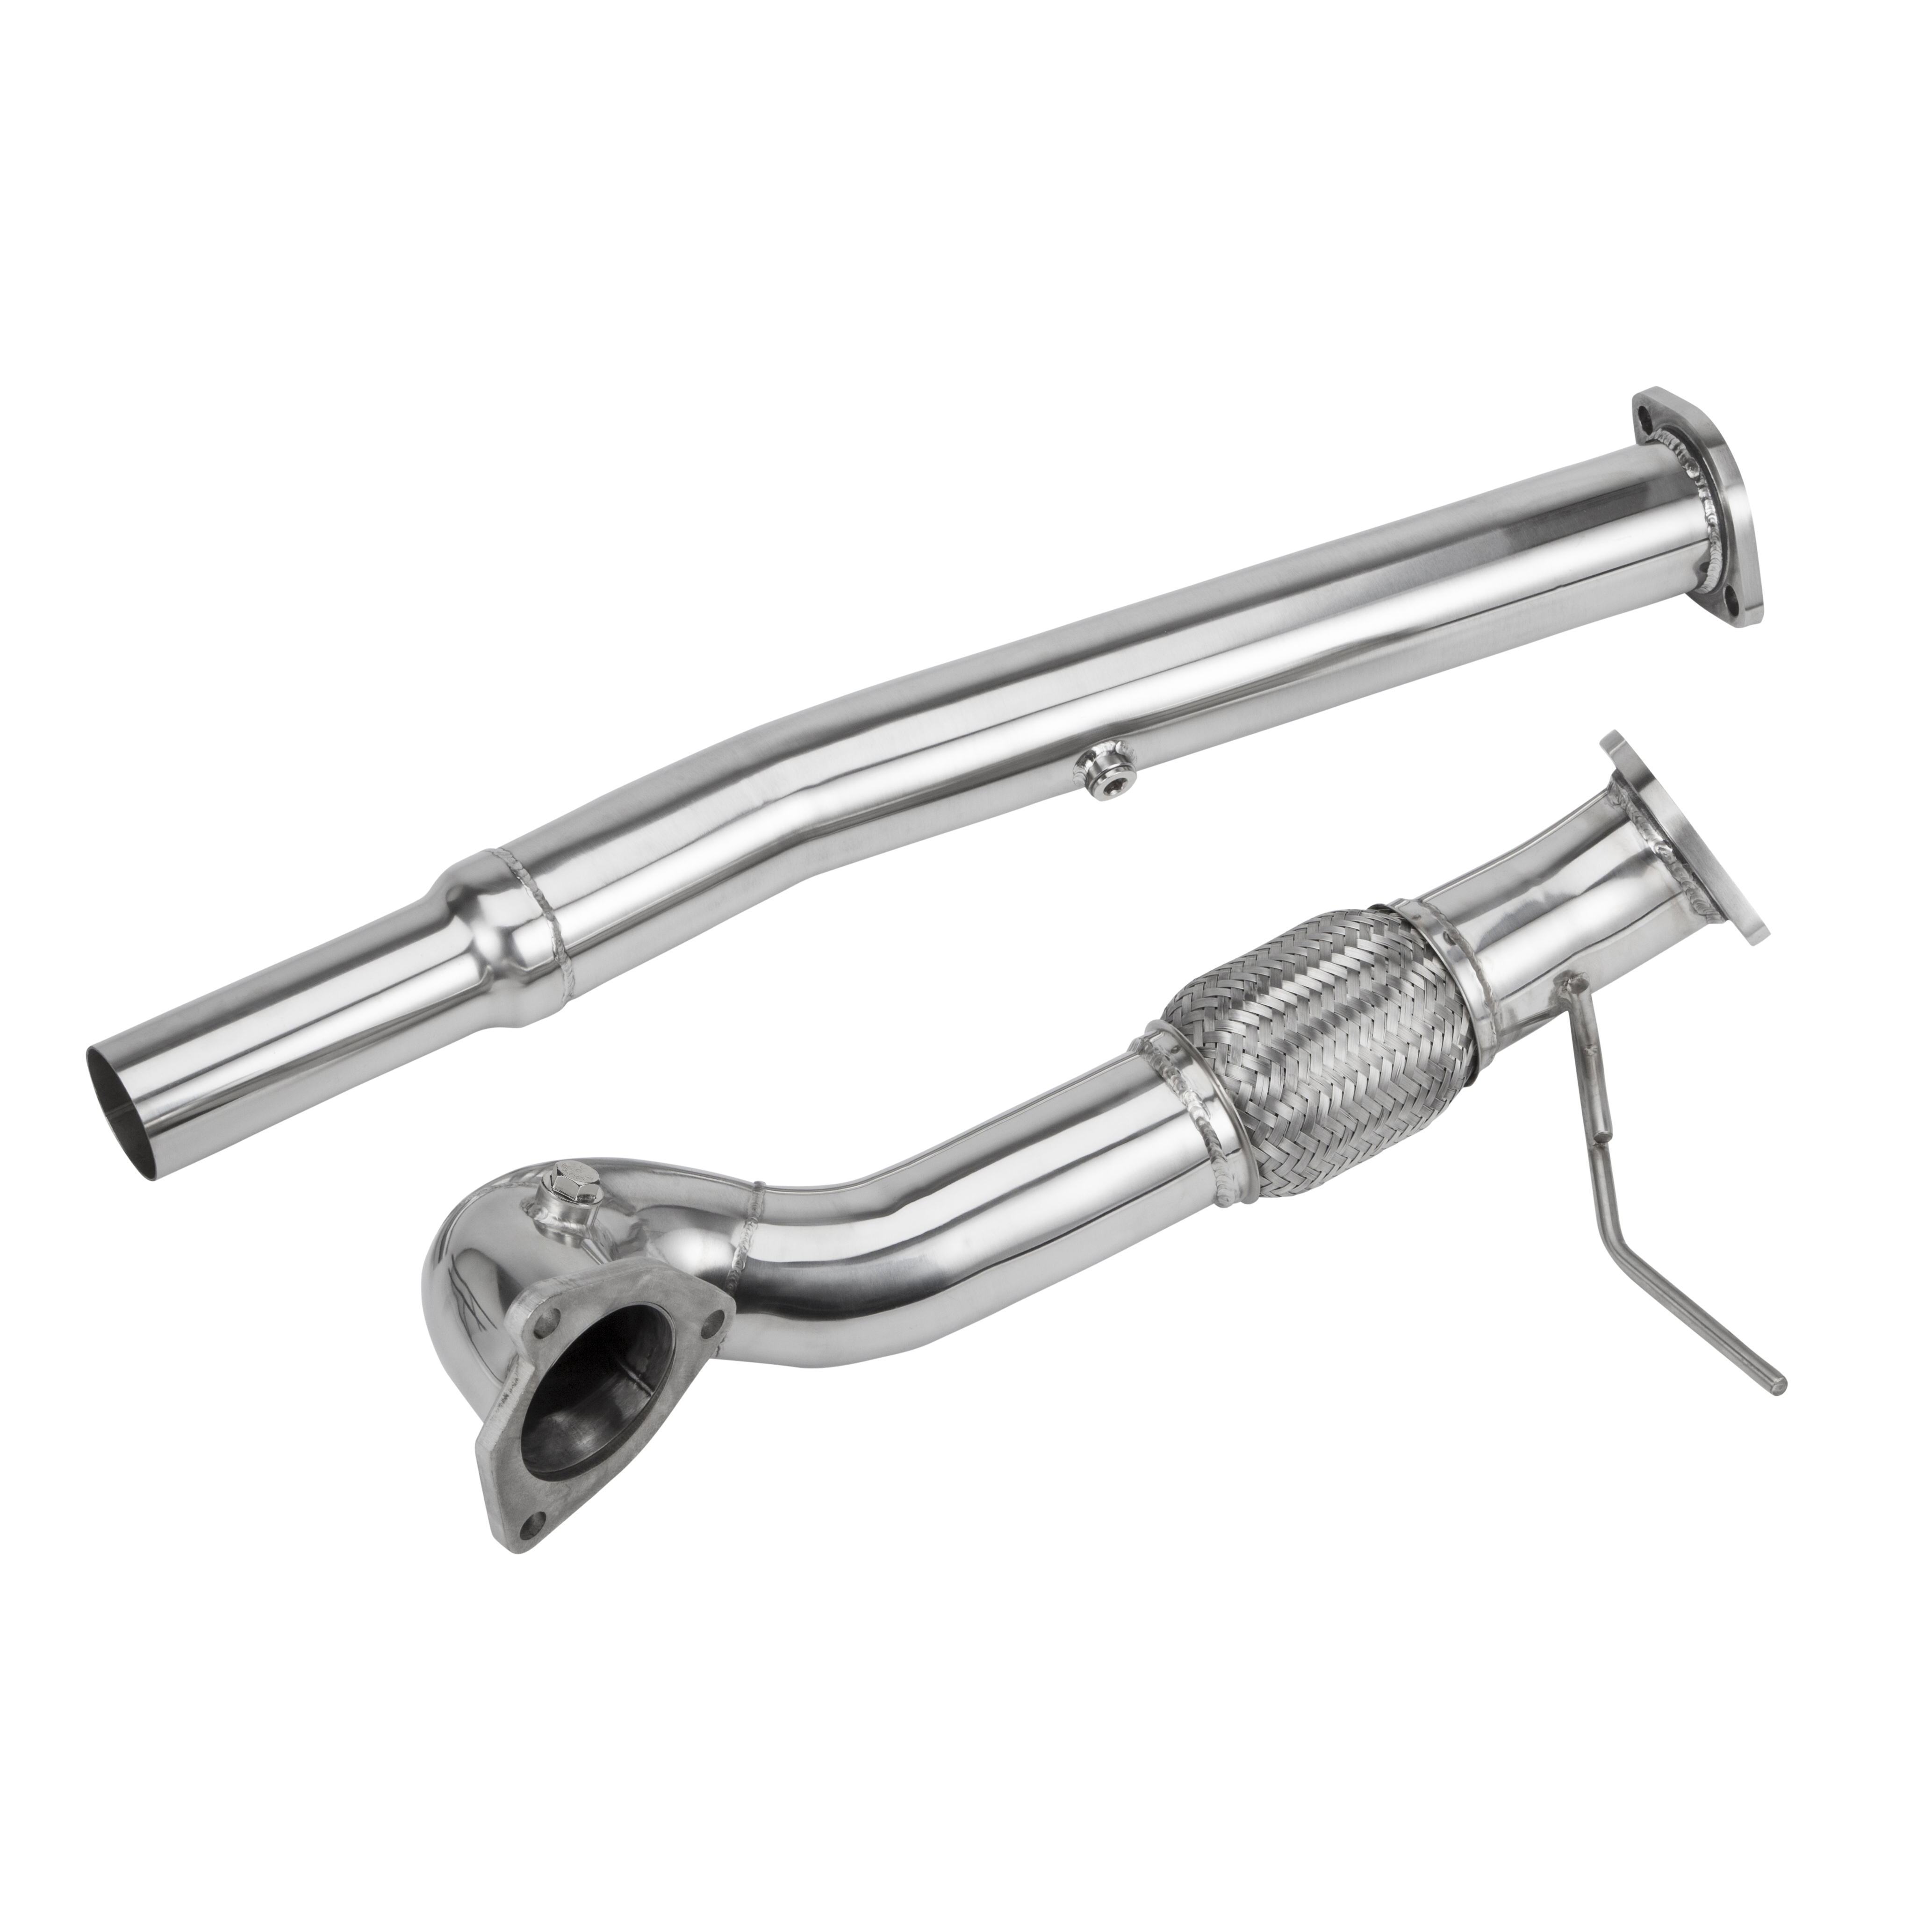 Stainless Steel Exhaust Turbo Decat Downpipe Audi S3 Tt Seat Leon Cupra R 1 8t